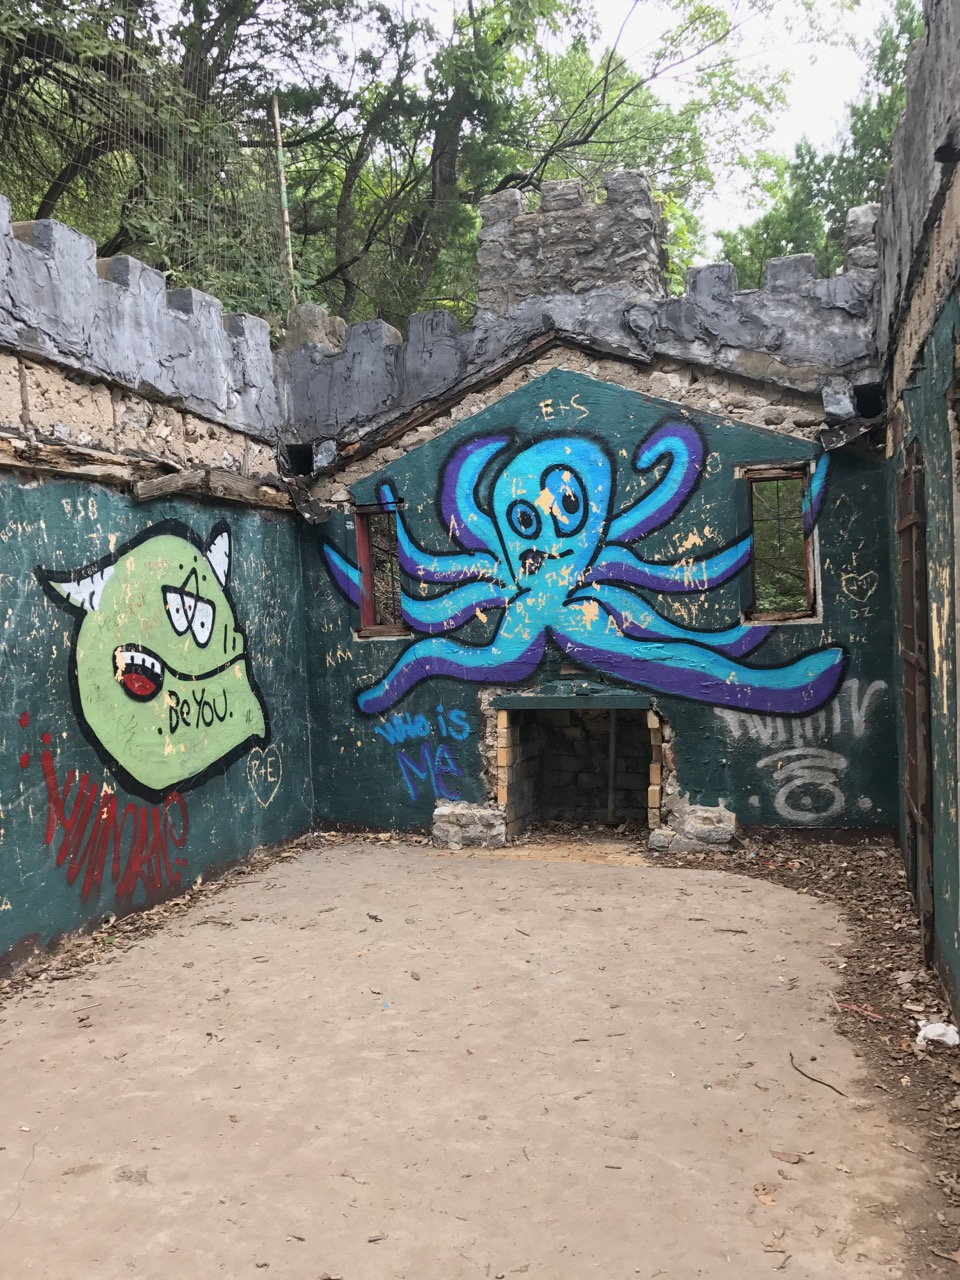 Part of the old castle at Turner Falls